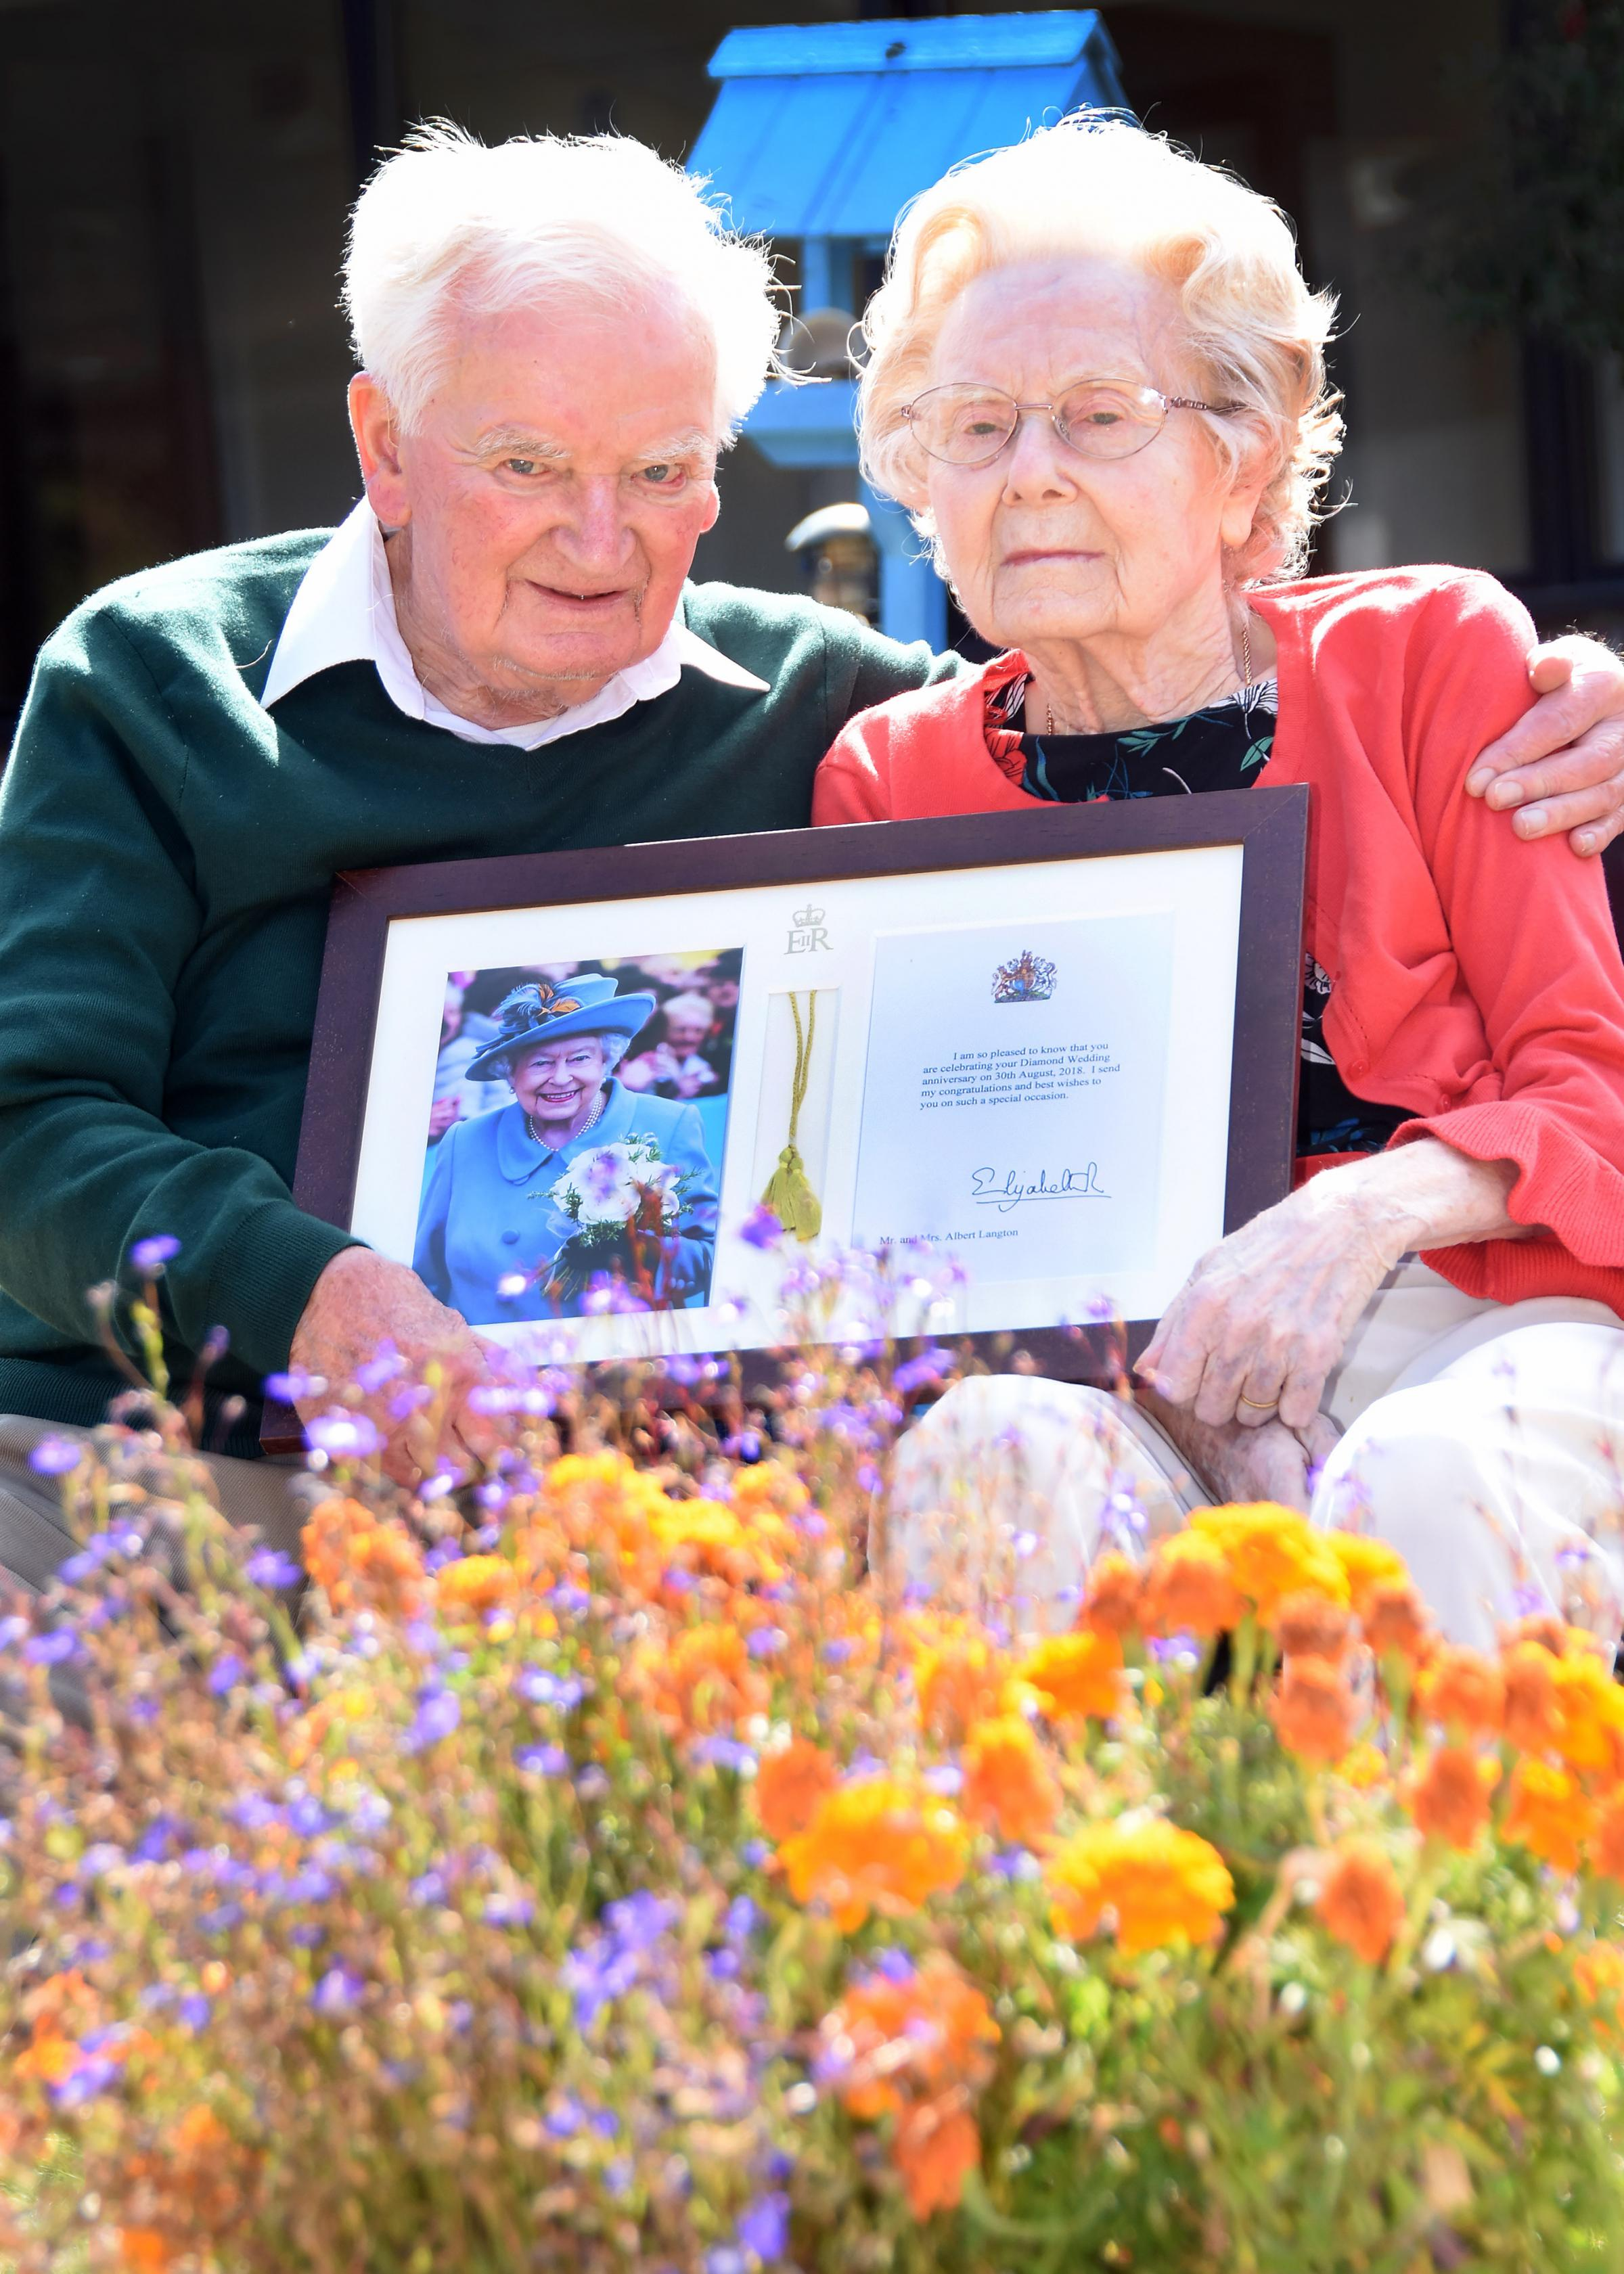 Albert and Marguerite Langton celebrating their diamond wedding anniversary at the Rivermead care home in NortonPicture: David Harrison